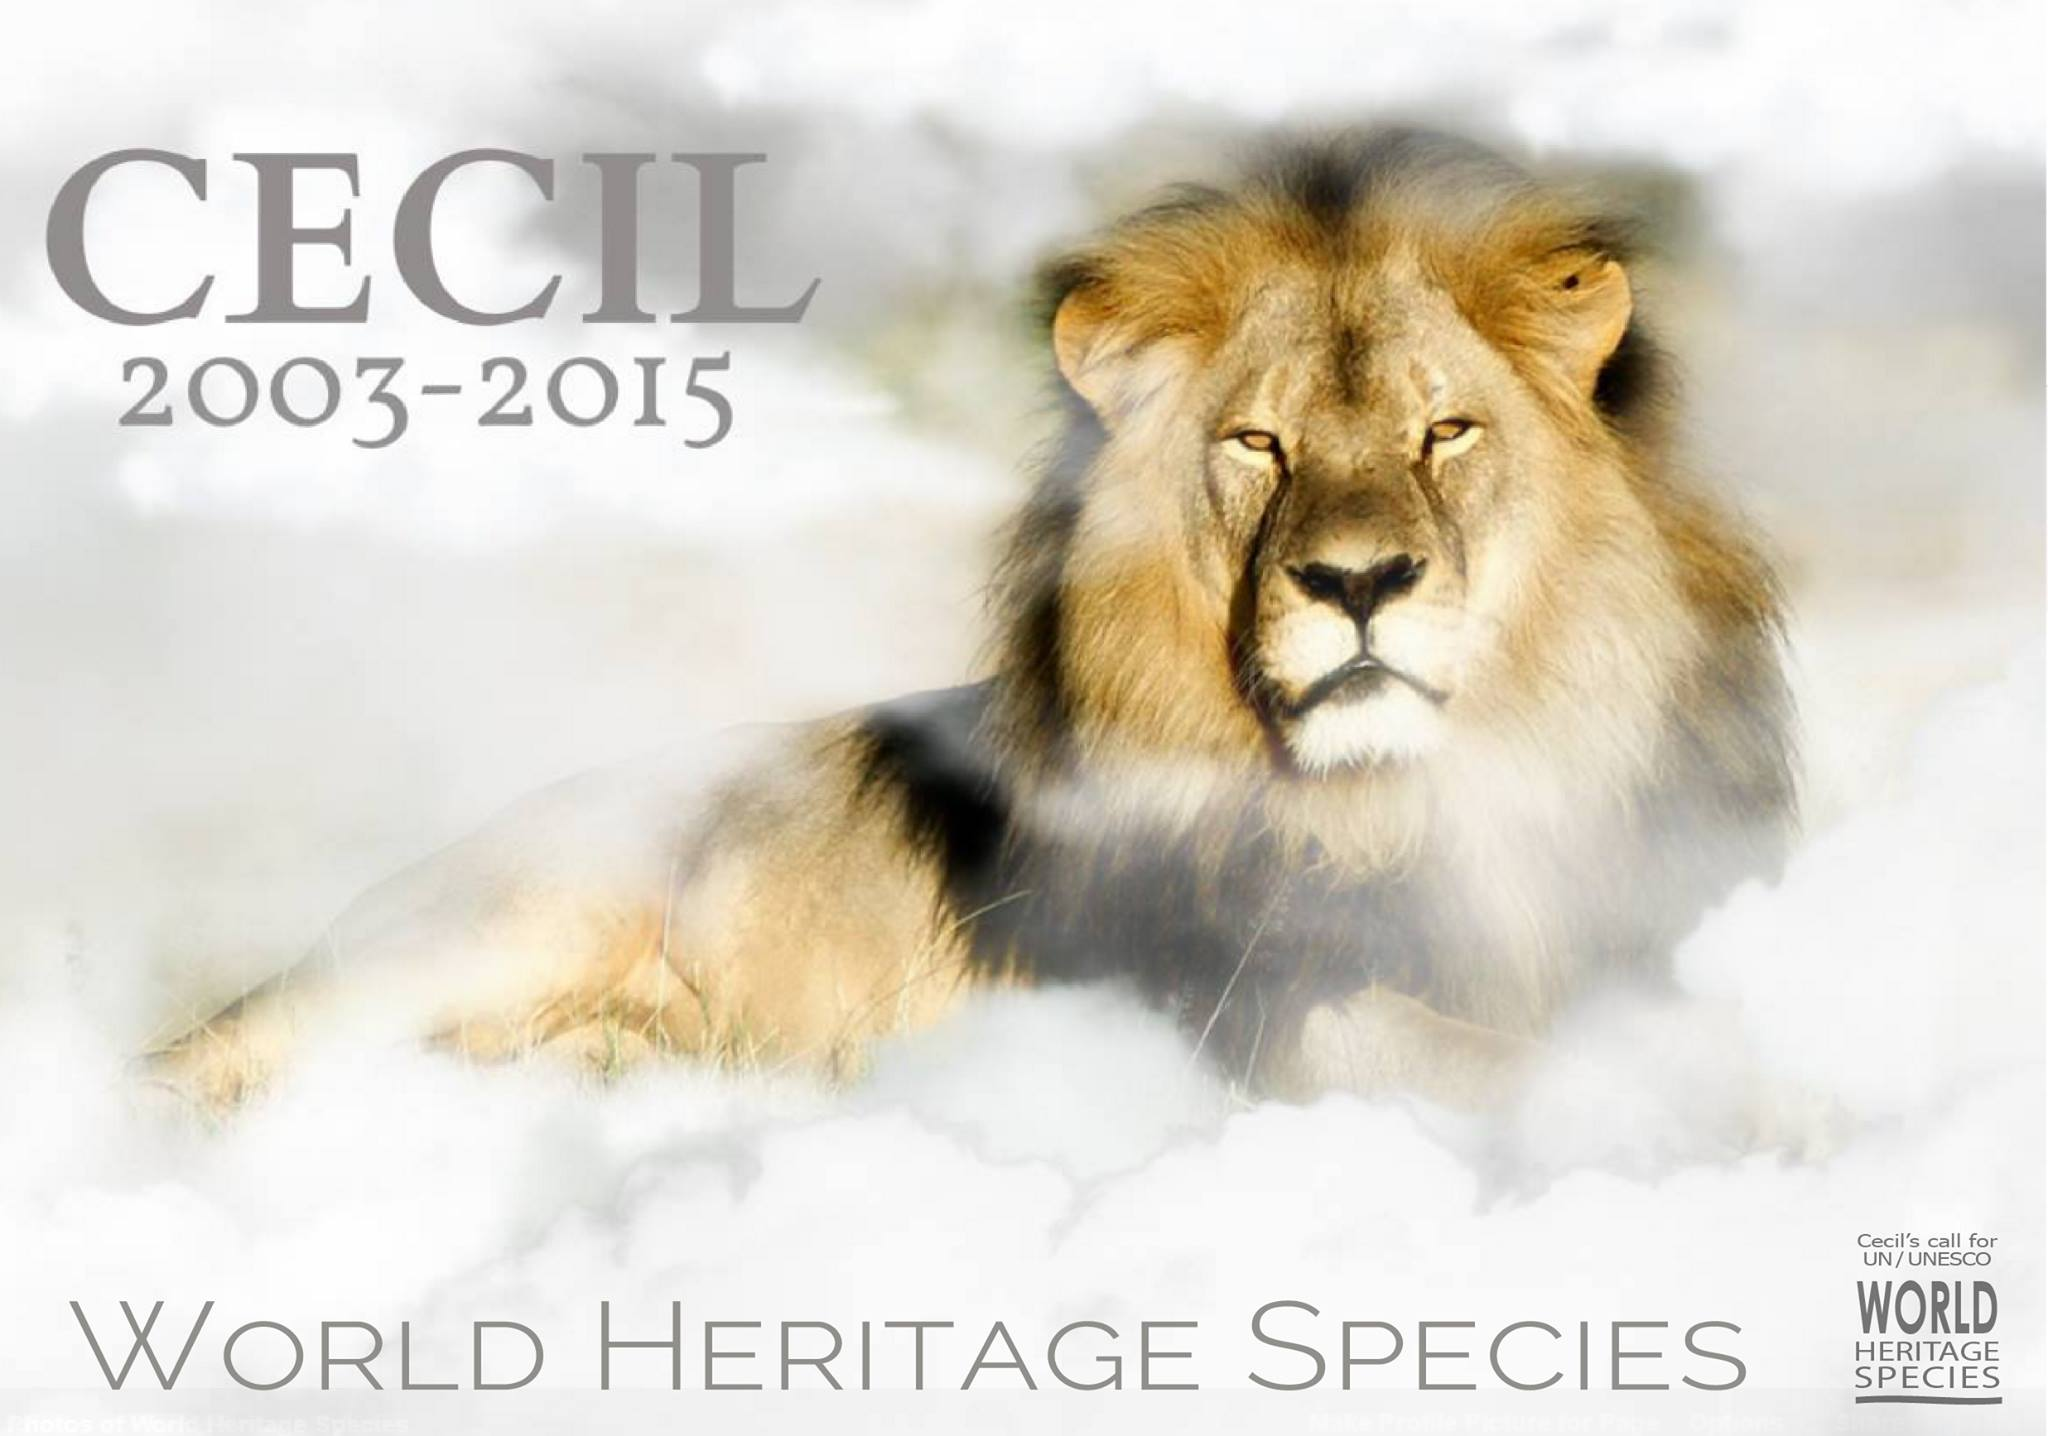 Honor Cecil by Signing World Heritage Species Petition